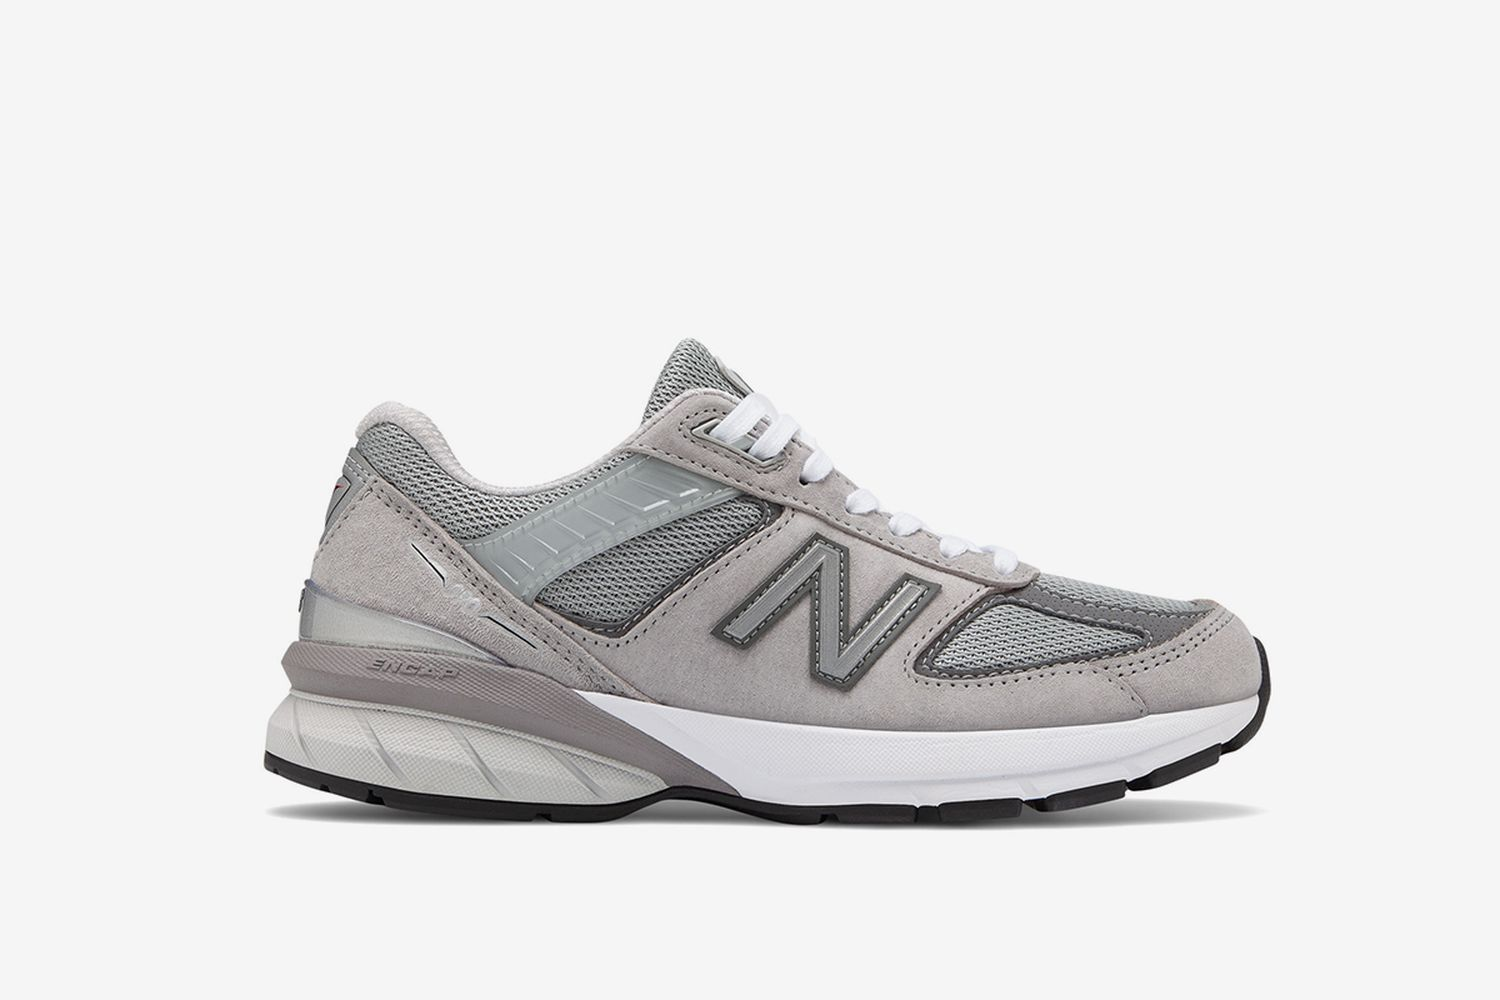 990v5 Made in US